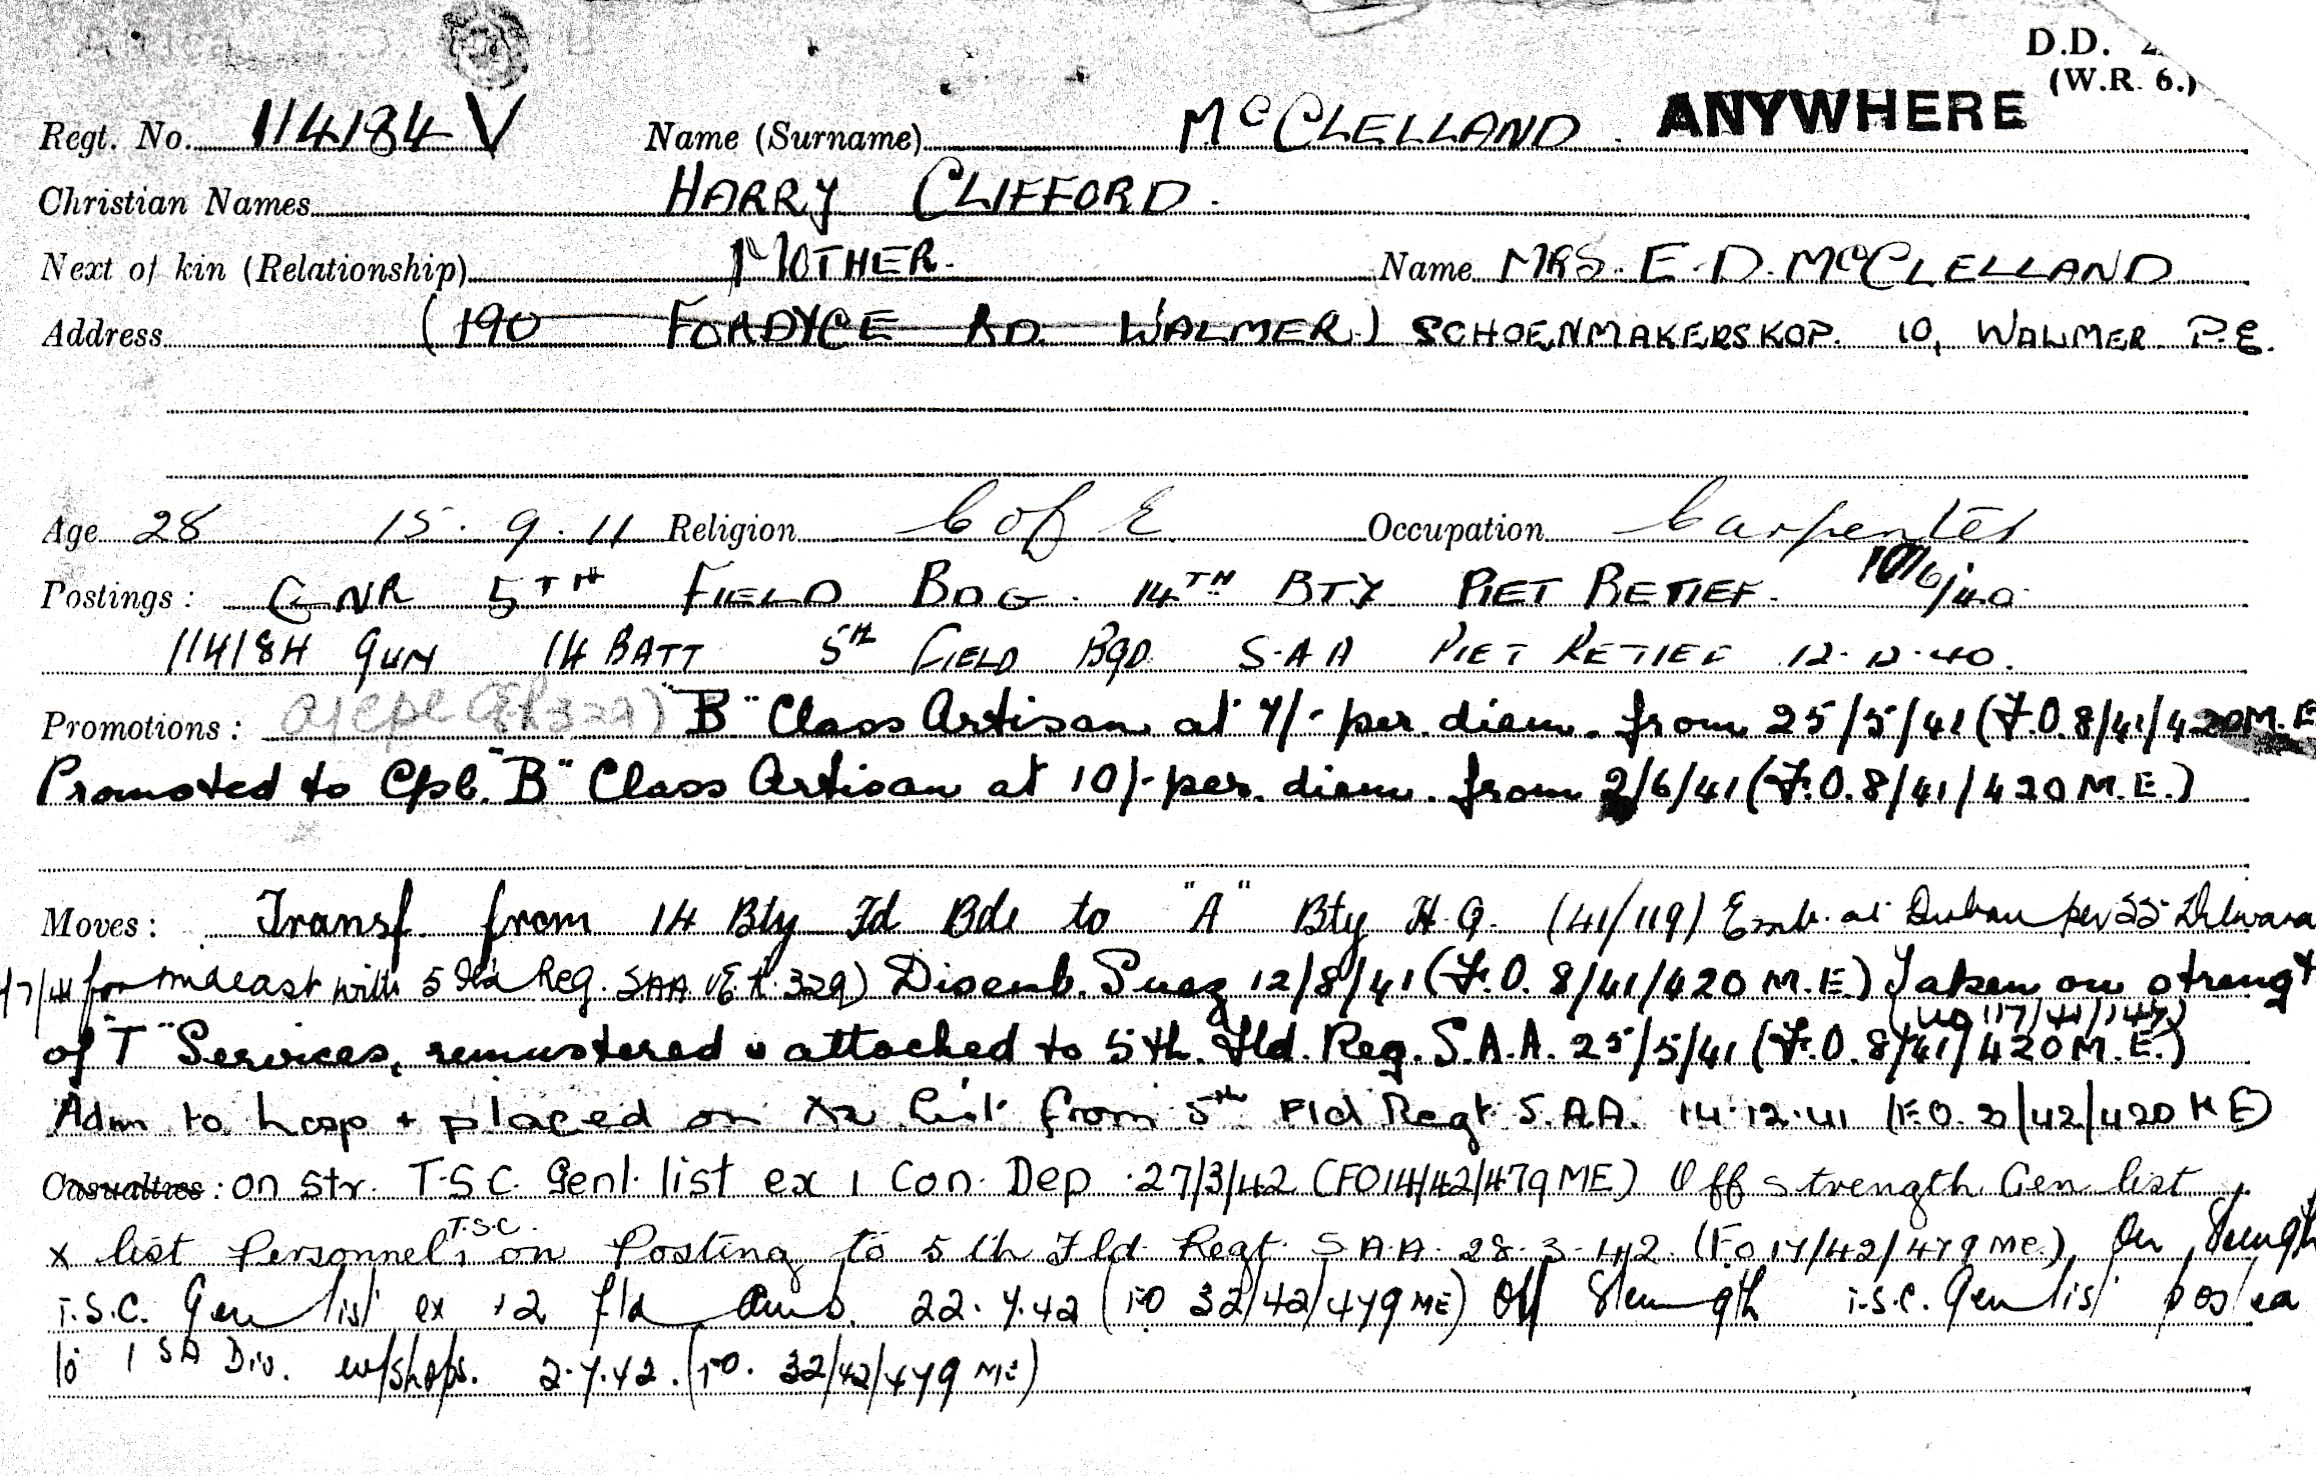 military-record-hc-mccleland-page03